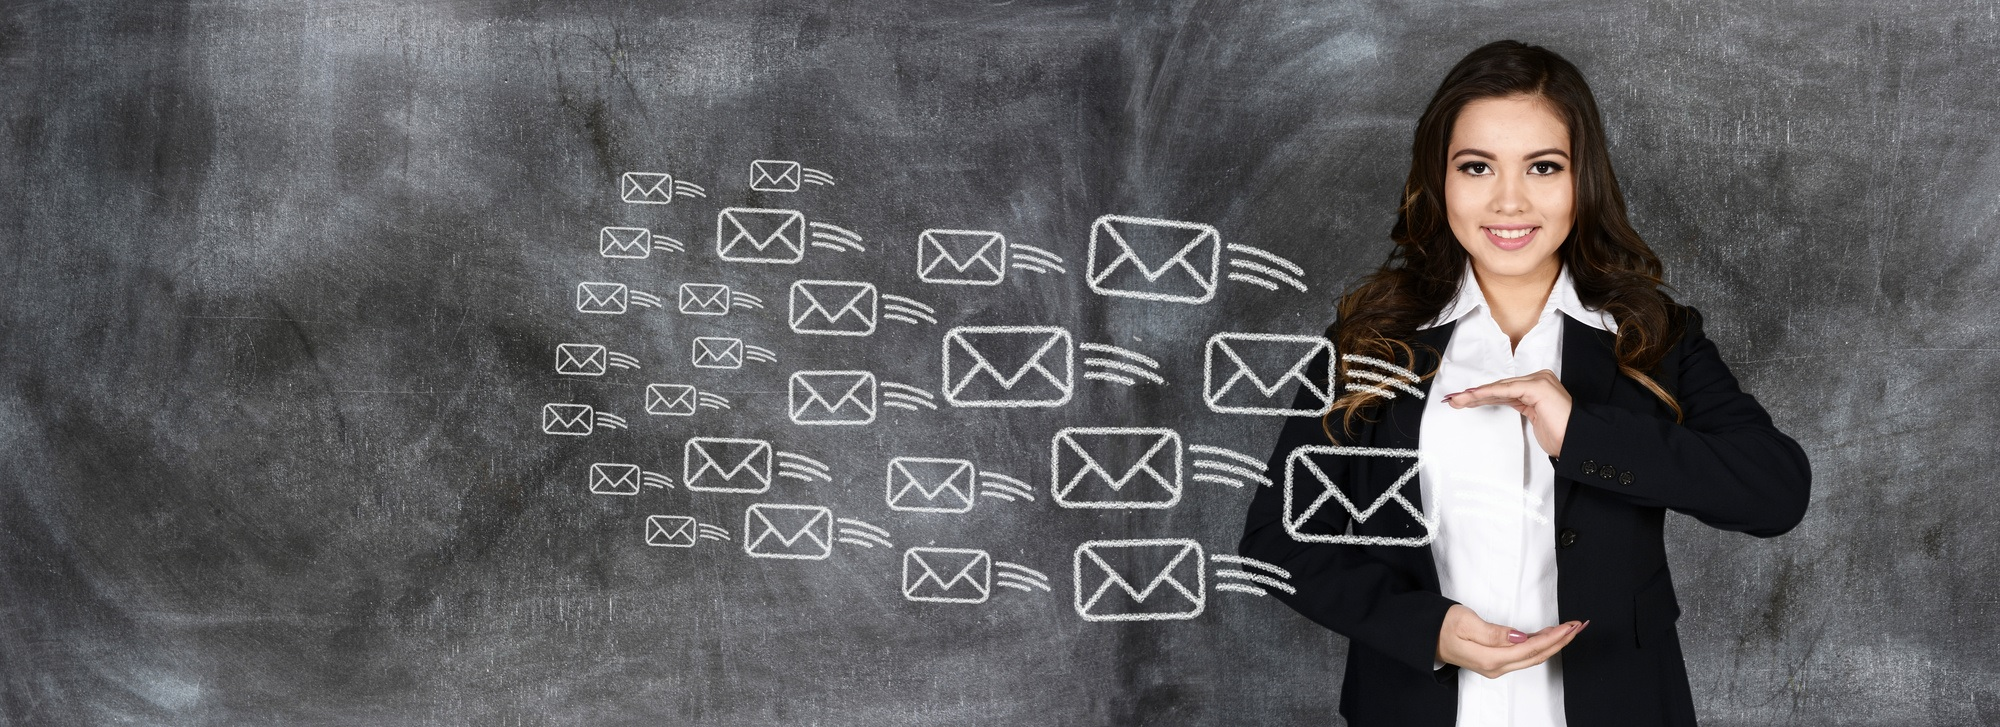 9 Tips for Your Next Email Marketing Campaign